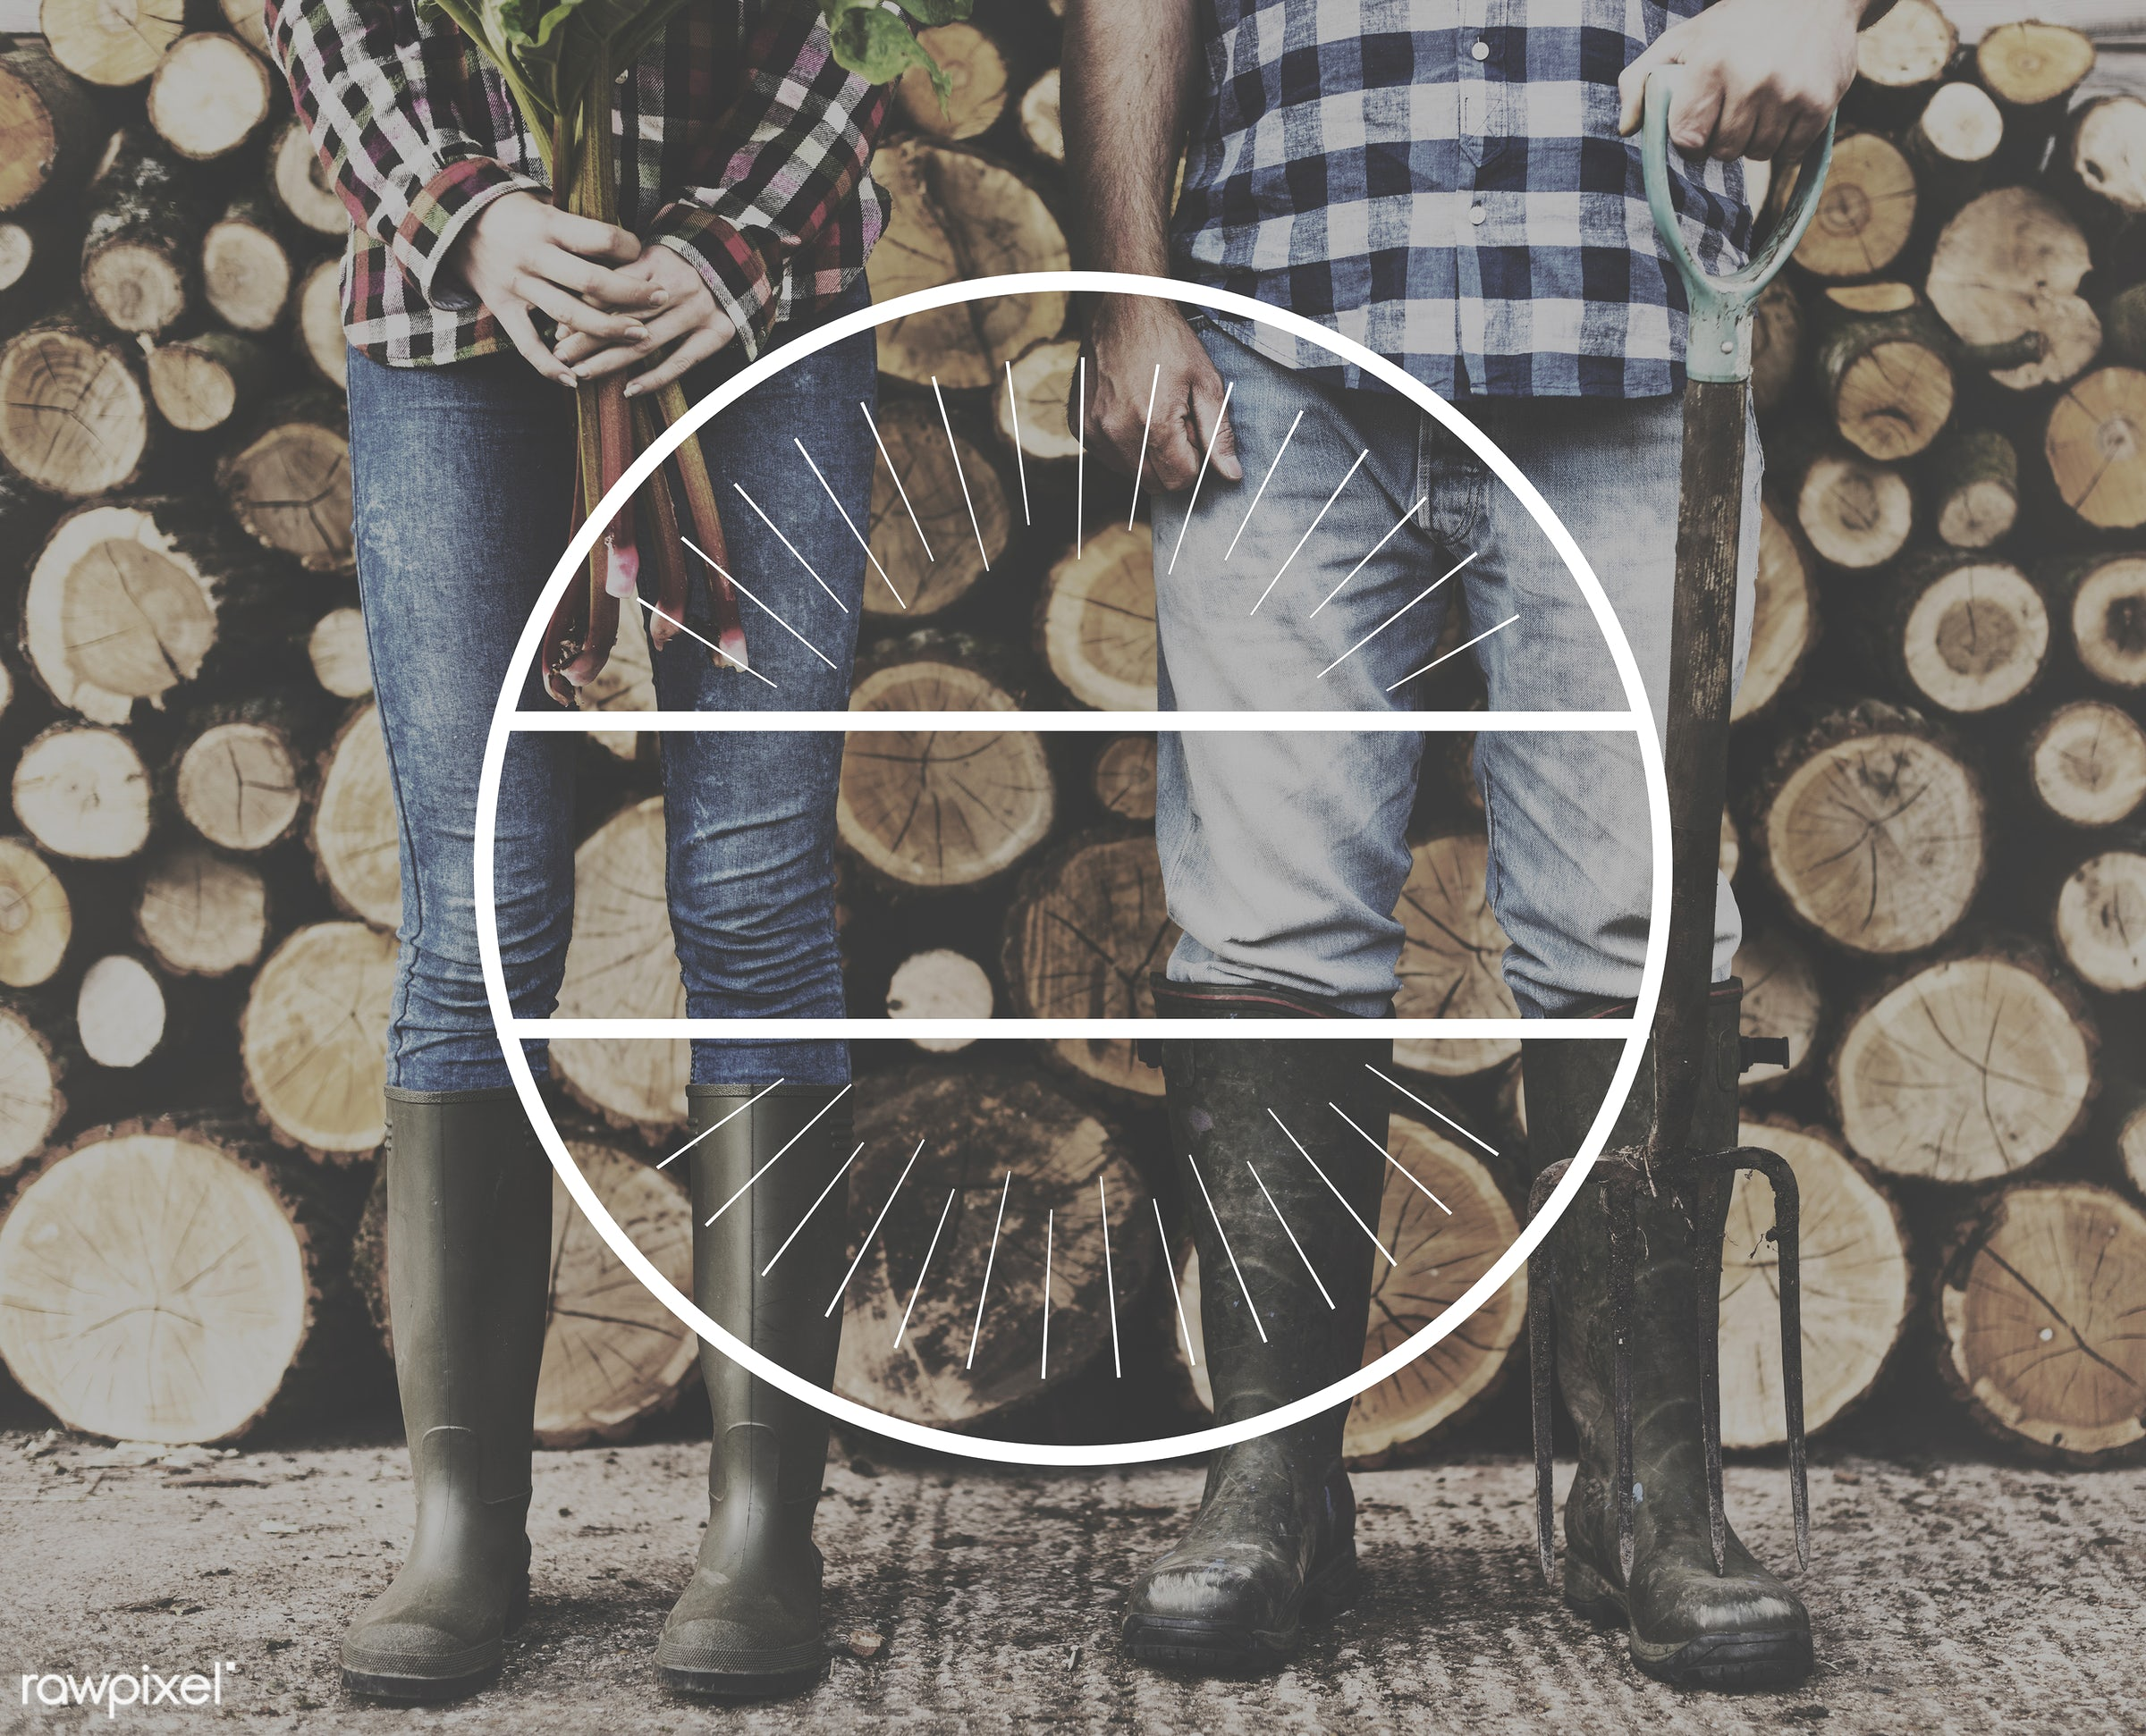 badge, banner, blank, caucasian, circle, copy space, farm, farmer, firewood, graphic, hands, holding, jeans, label, legs,...